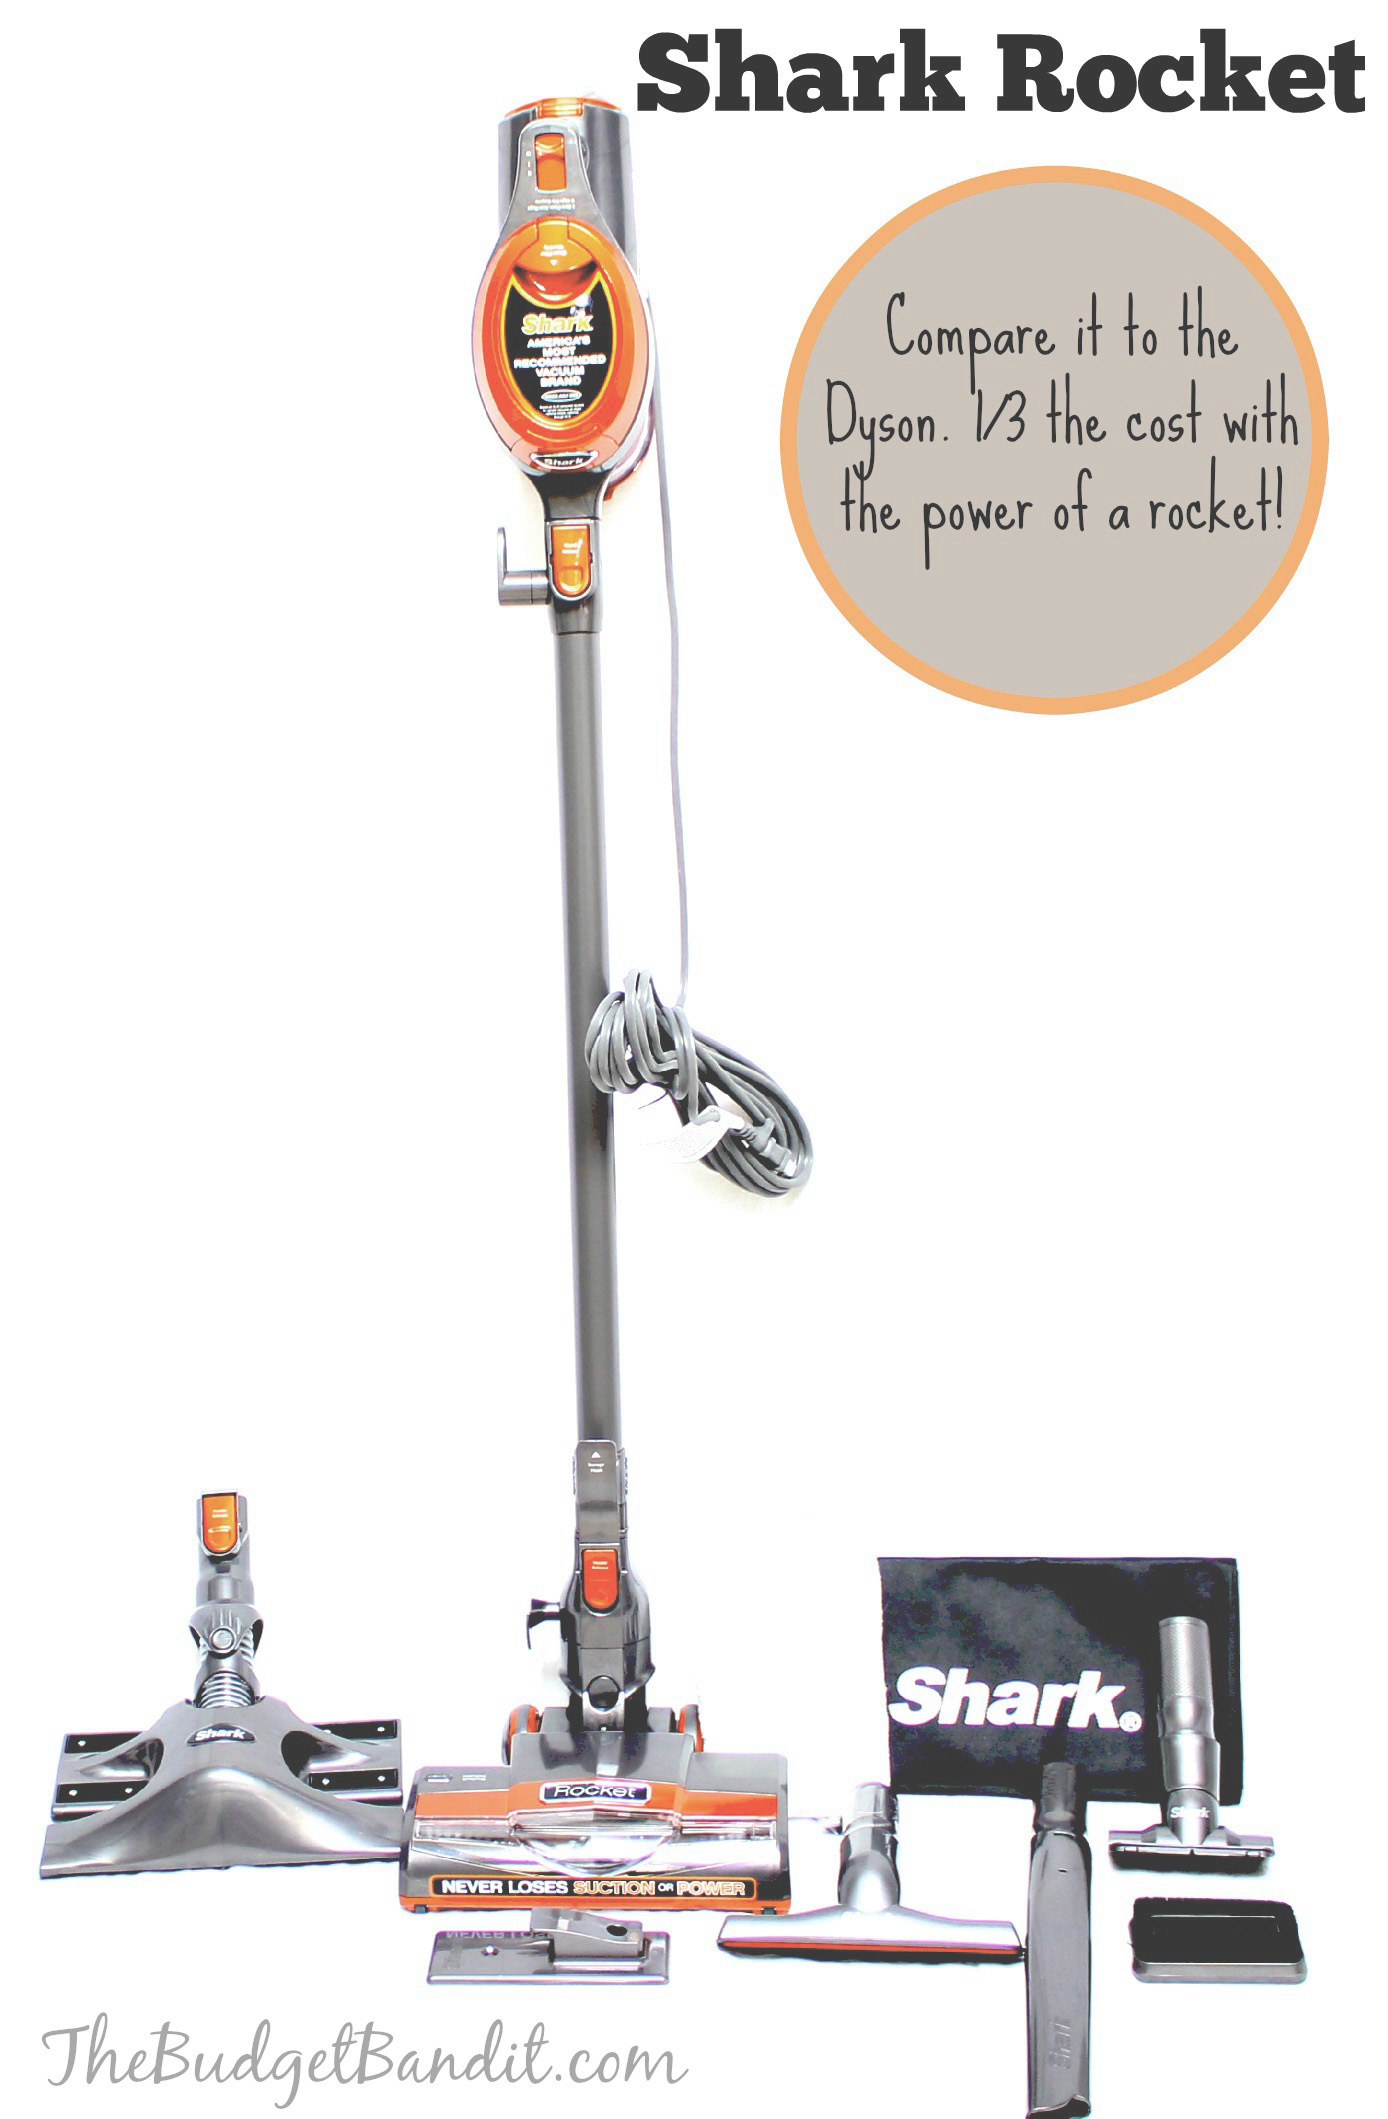 shark vacuum coupon codes 2014 Save money with 16 vacpartswarehouse promo codes,  coupon type: 16% off sale: get  up to $24 off vacuum belts plus free shipping $99.